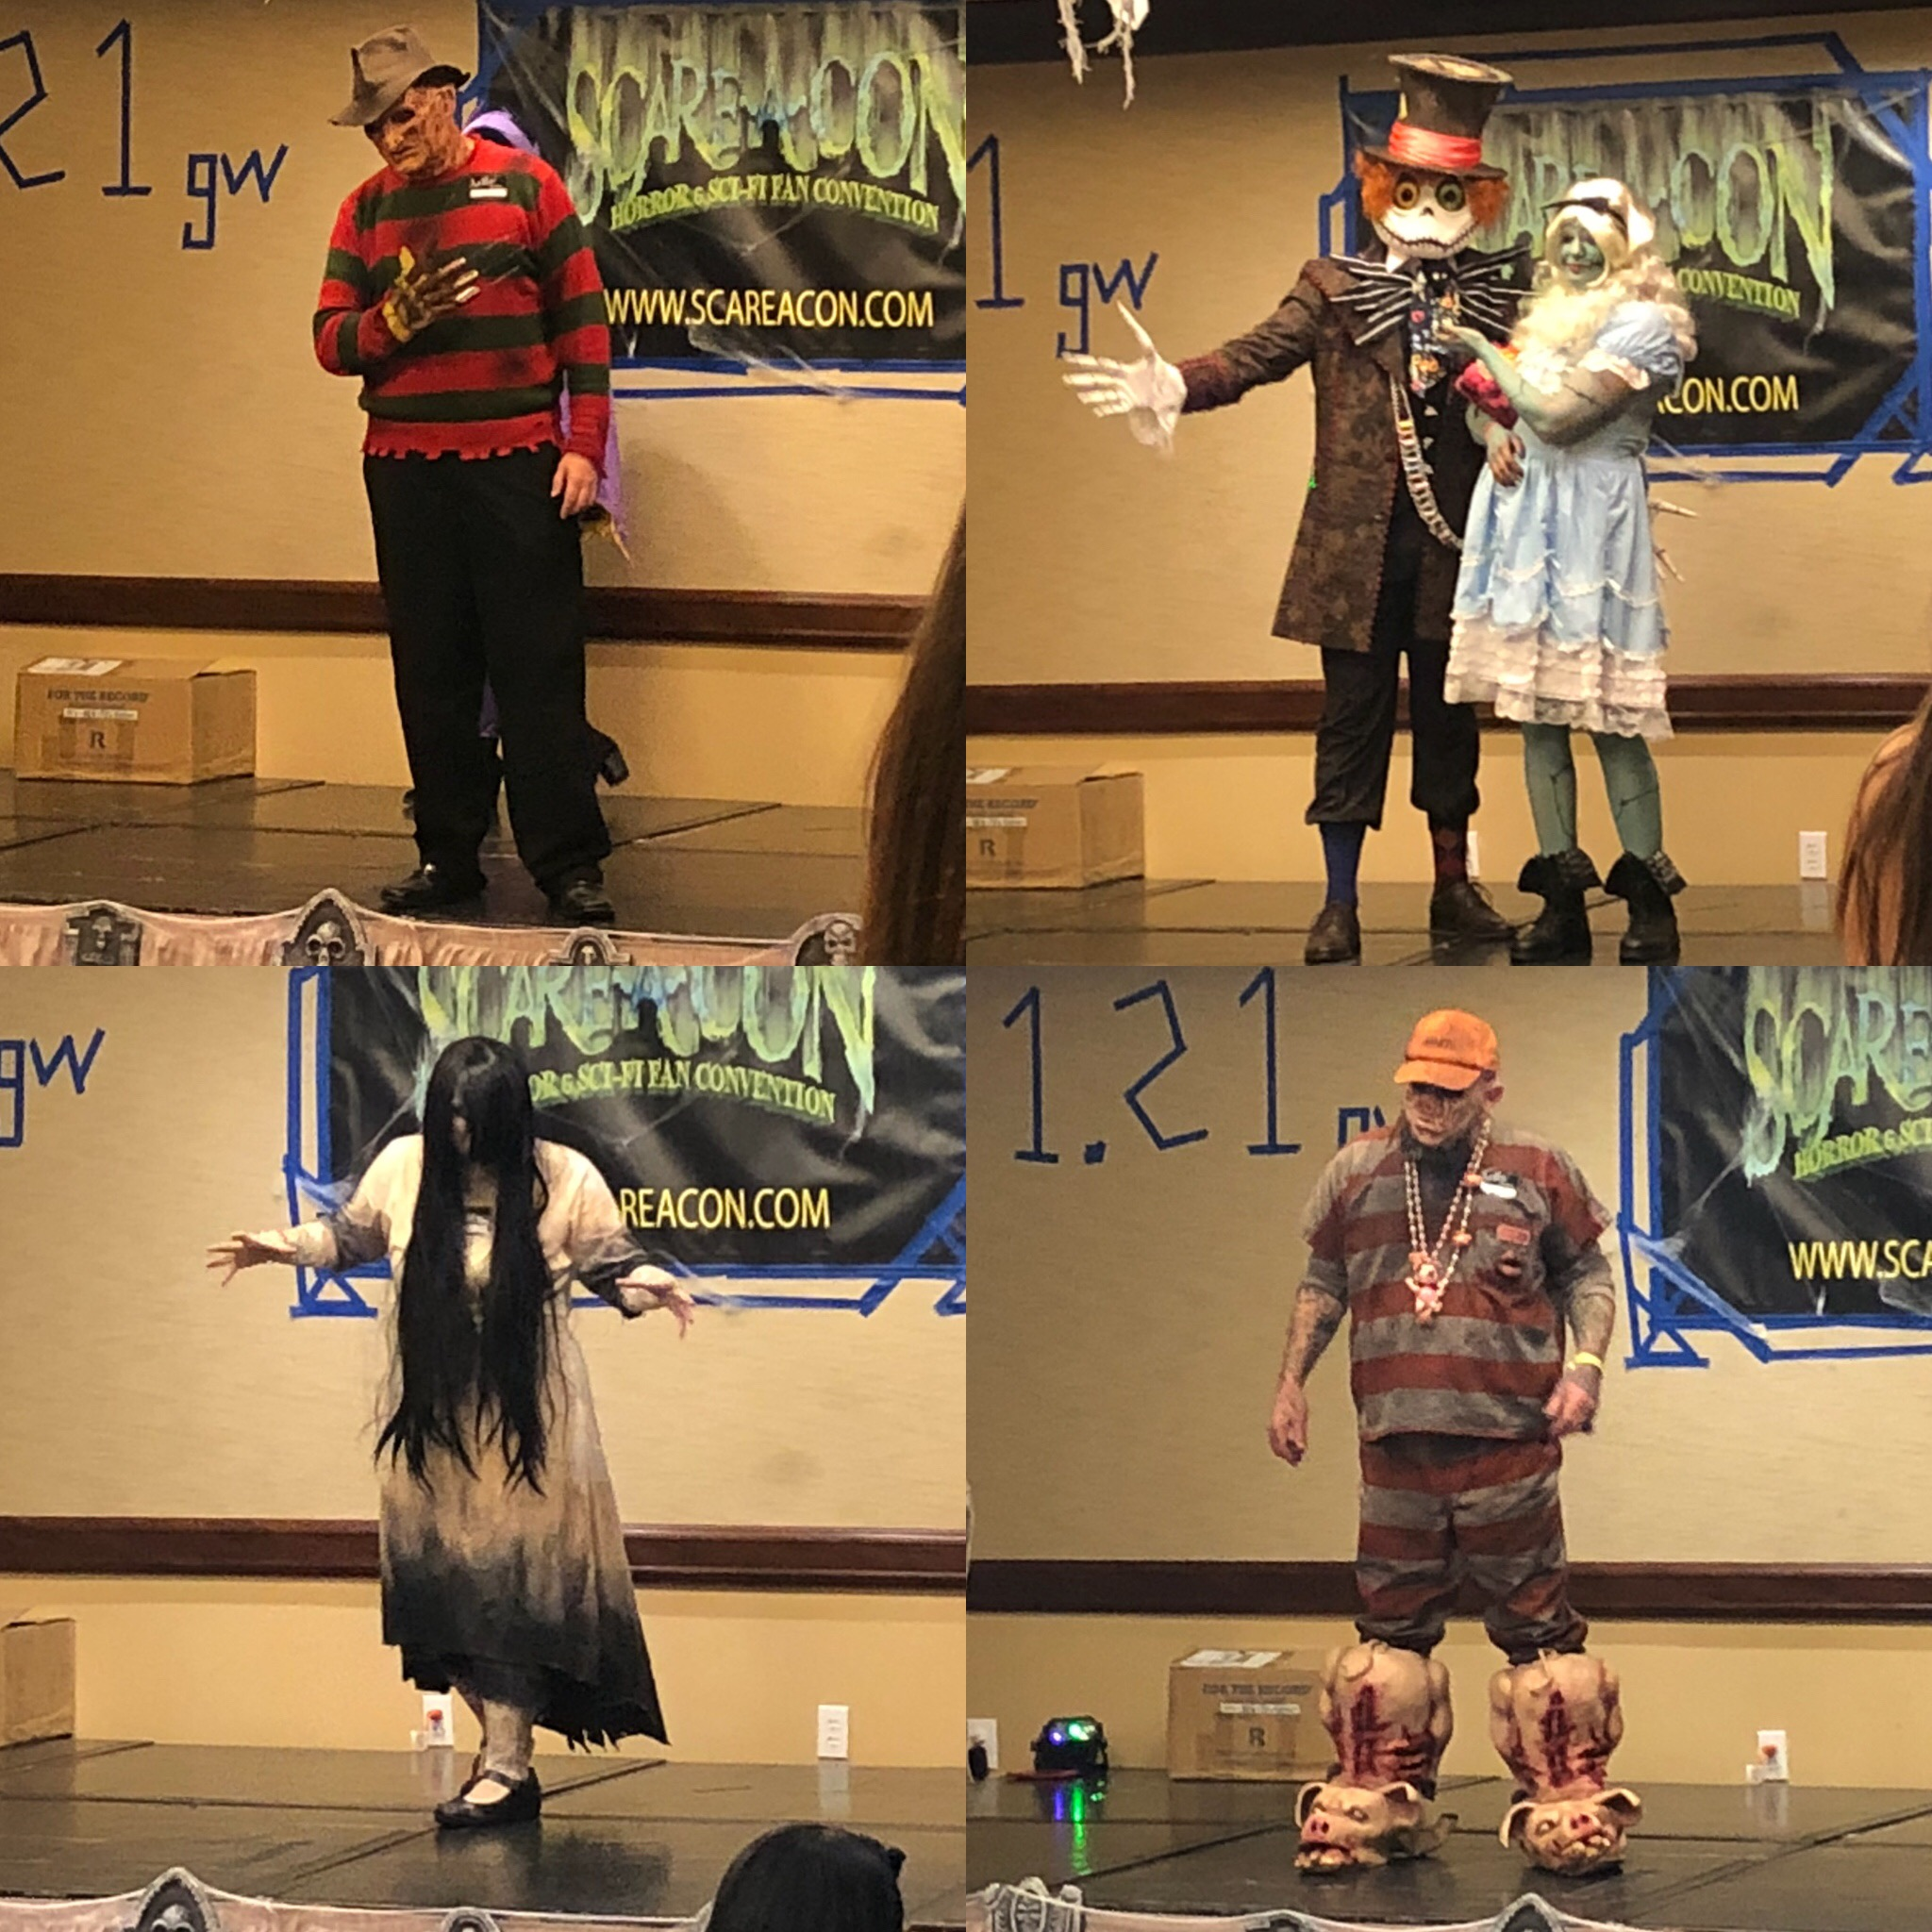 Four images of people in horror costumes for a costume contest